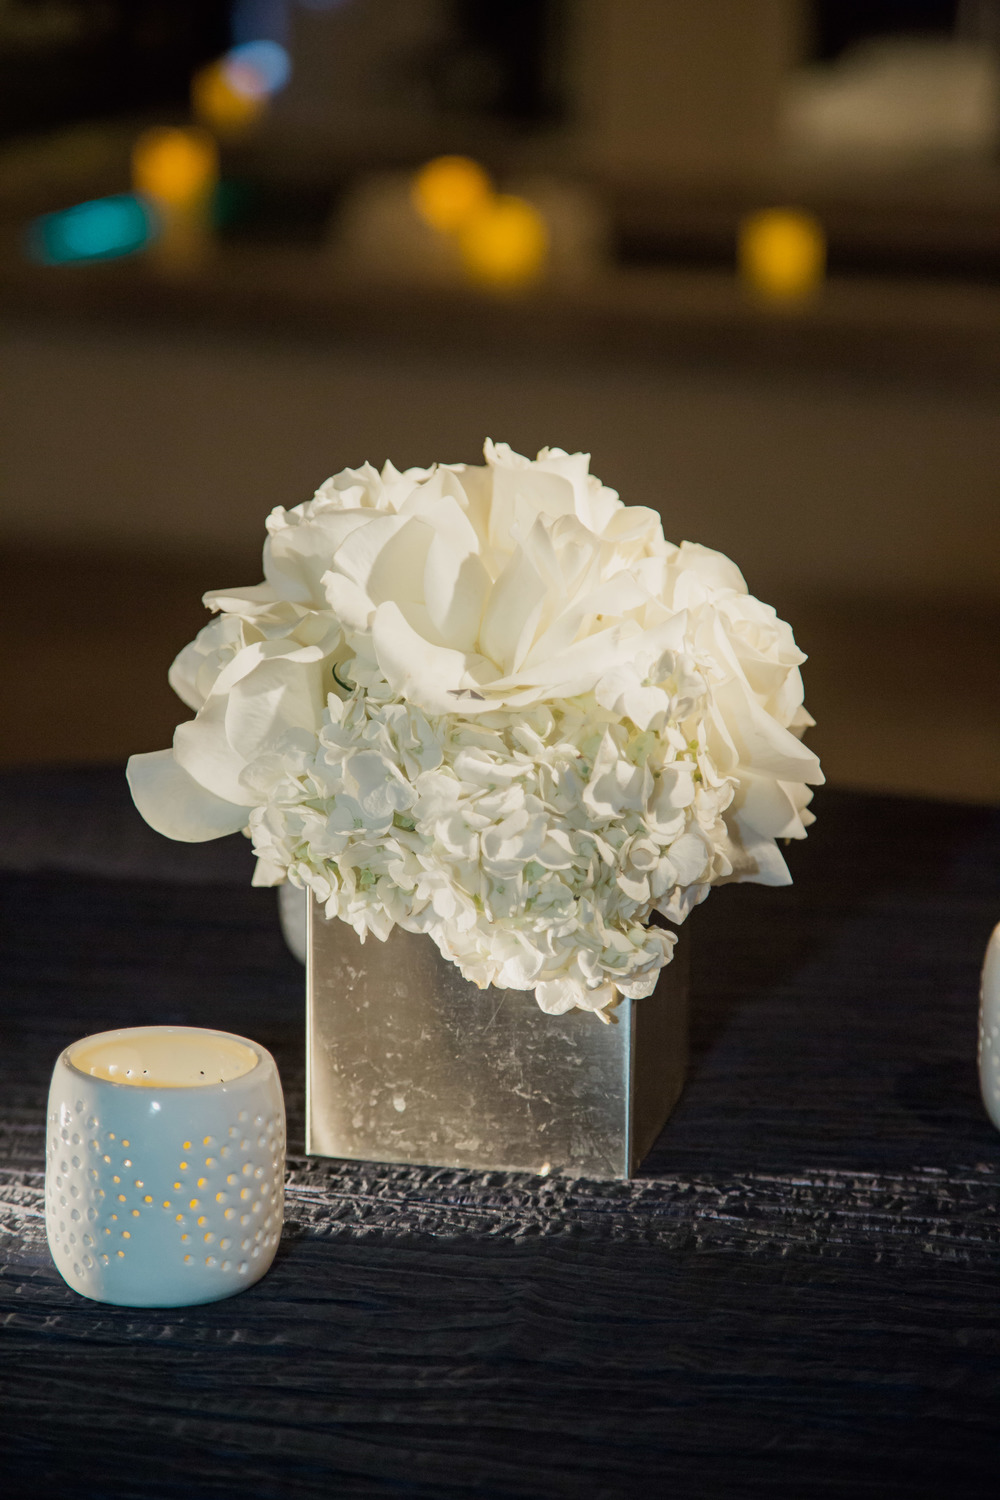 White flowers and white centerpieces on dark blue linens.   Vendor Credits:    Wedding in the   Nobu Villa    |    Las Vegas Wedding Planner   Andrea Eppolito     |    Photography by   Adam Frazier    |    Videography by   Pure Light Creative    |    Floral and Decor by   Destinations by Design    |  Lighting by LED Unplugged  |    Music by   DJ Mike Fox